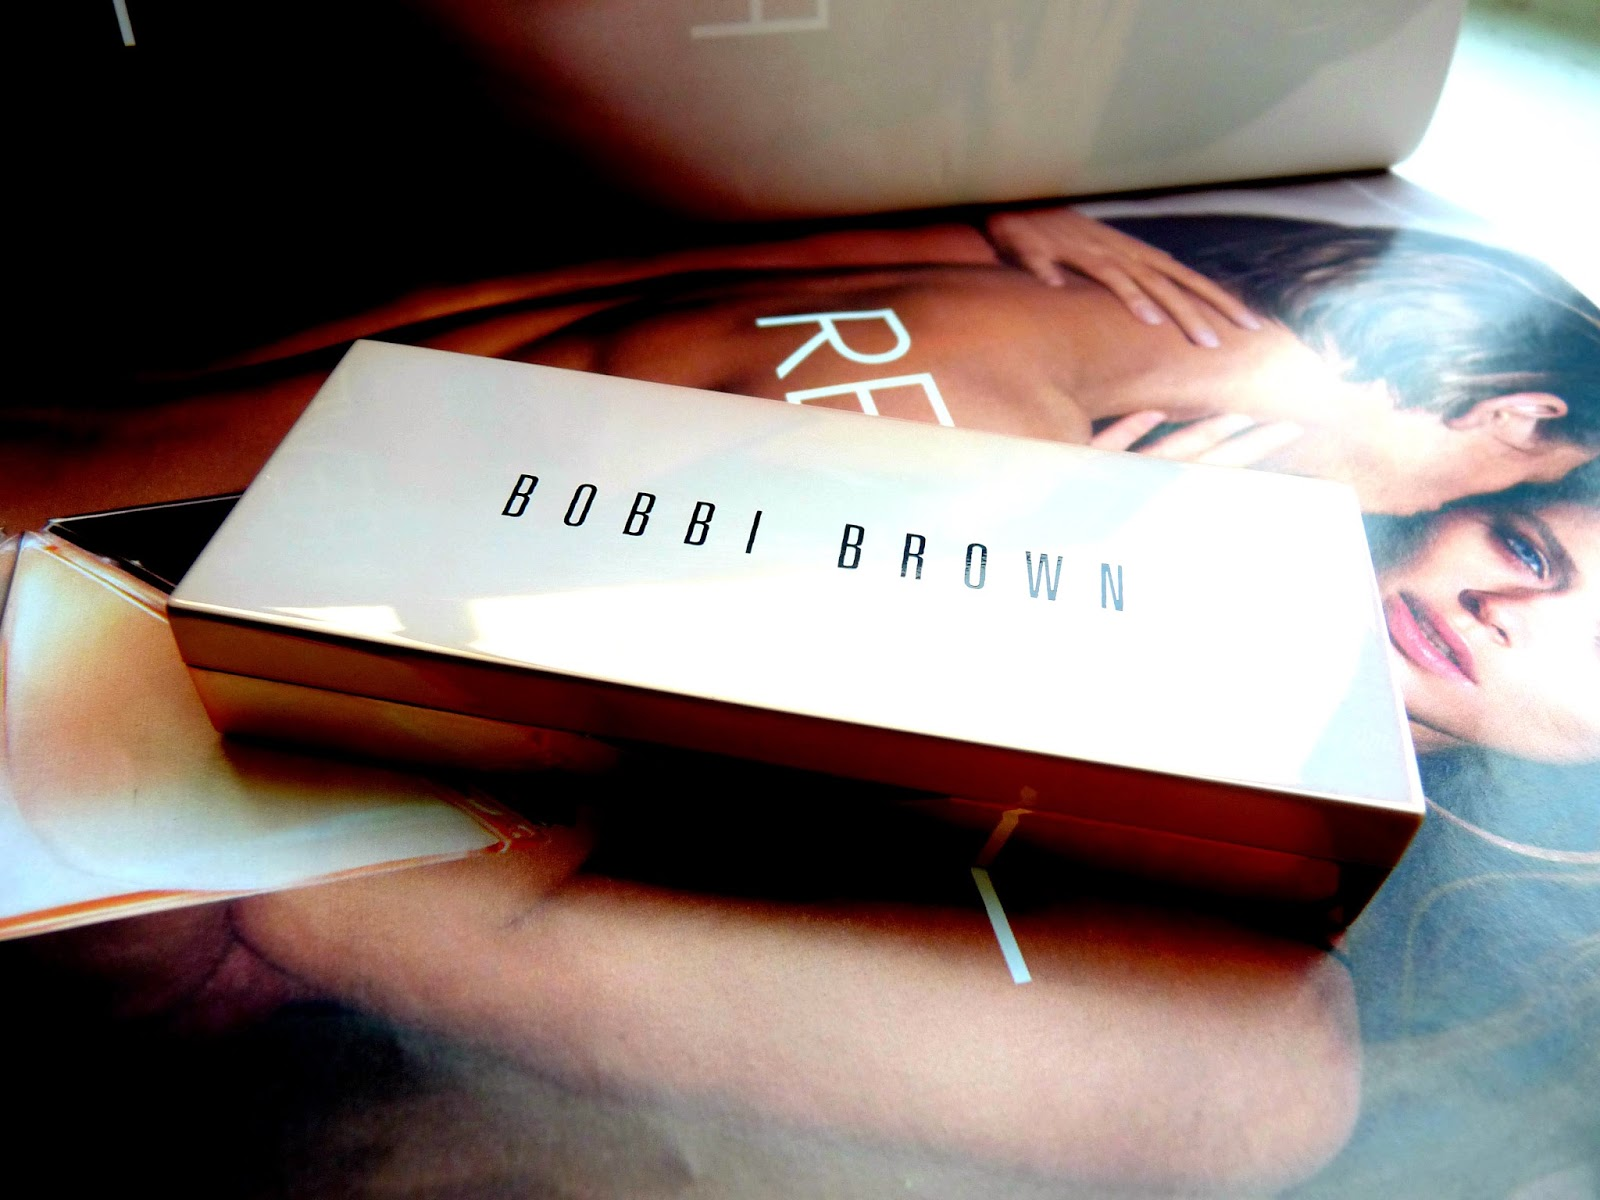 bobbi brown shimmer brick eyeshadow palette pink opal swatches review makeup youwishyou